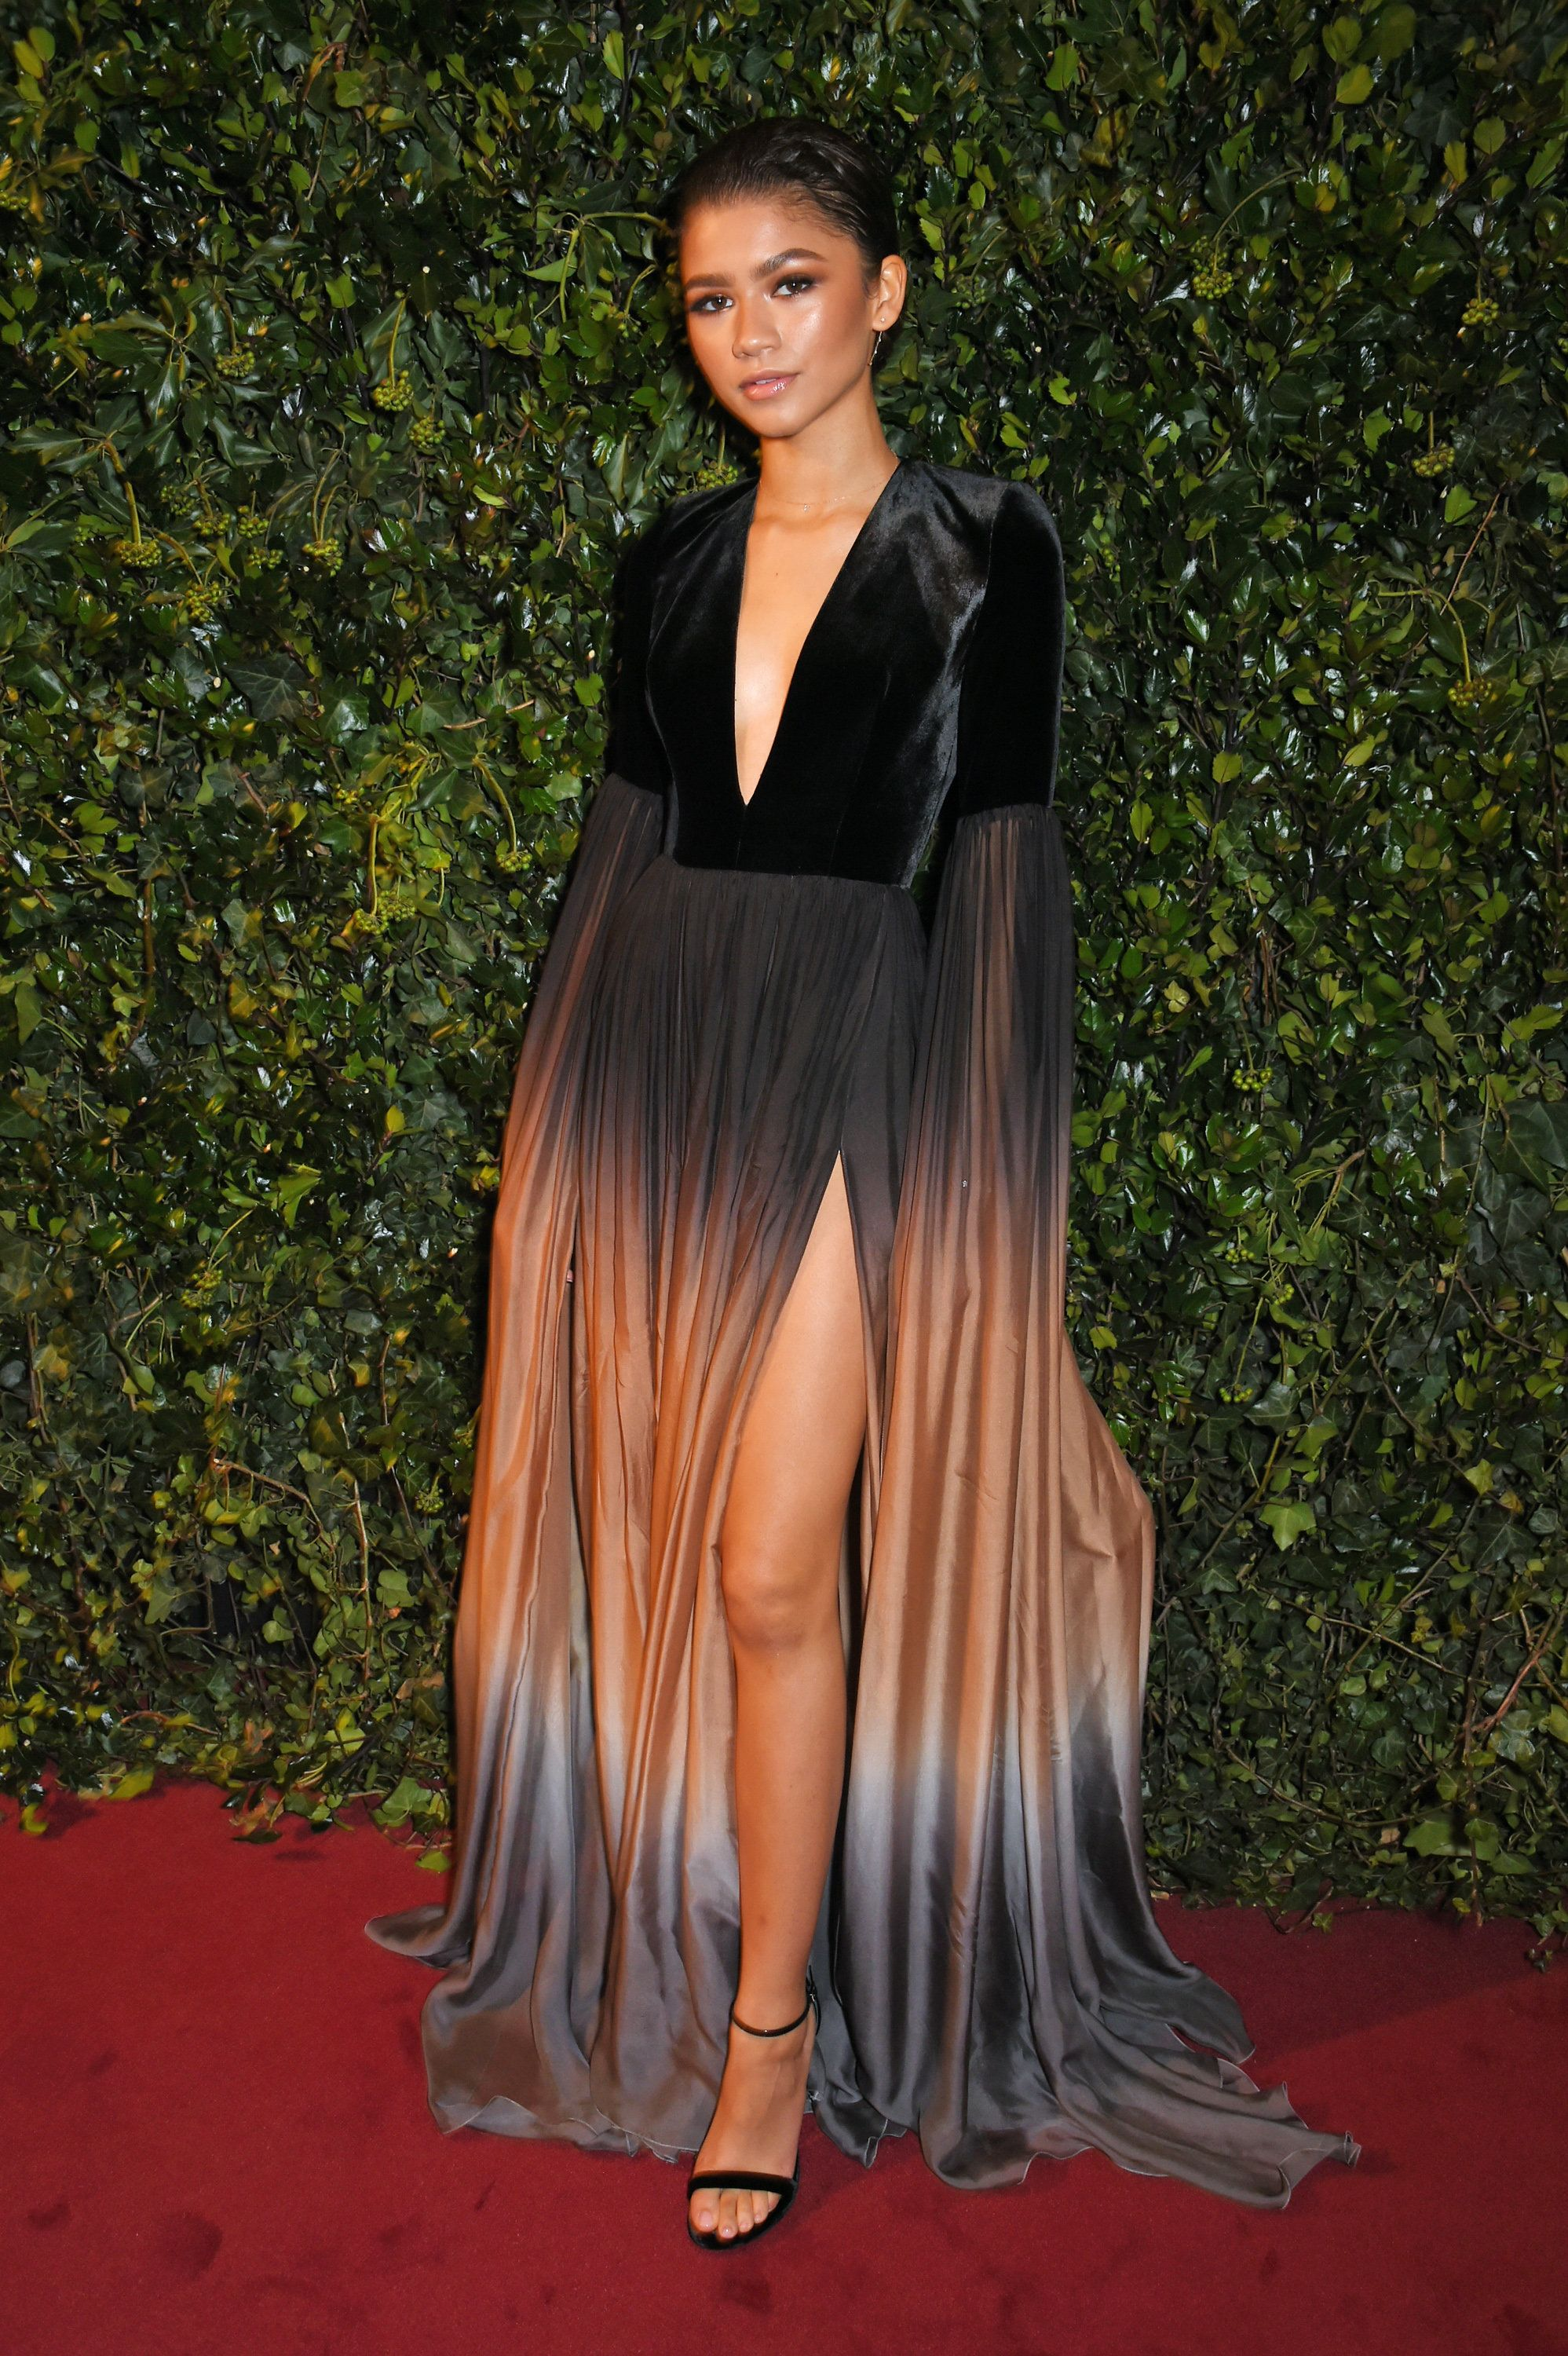 Zenslaya 10 Times Zendaya Set The Red Carpet On Fire Zendaya Outfits Zendaya Dress Zendaya Style